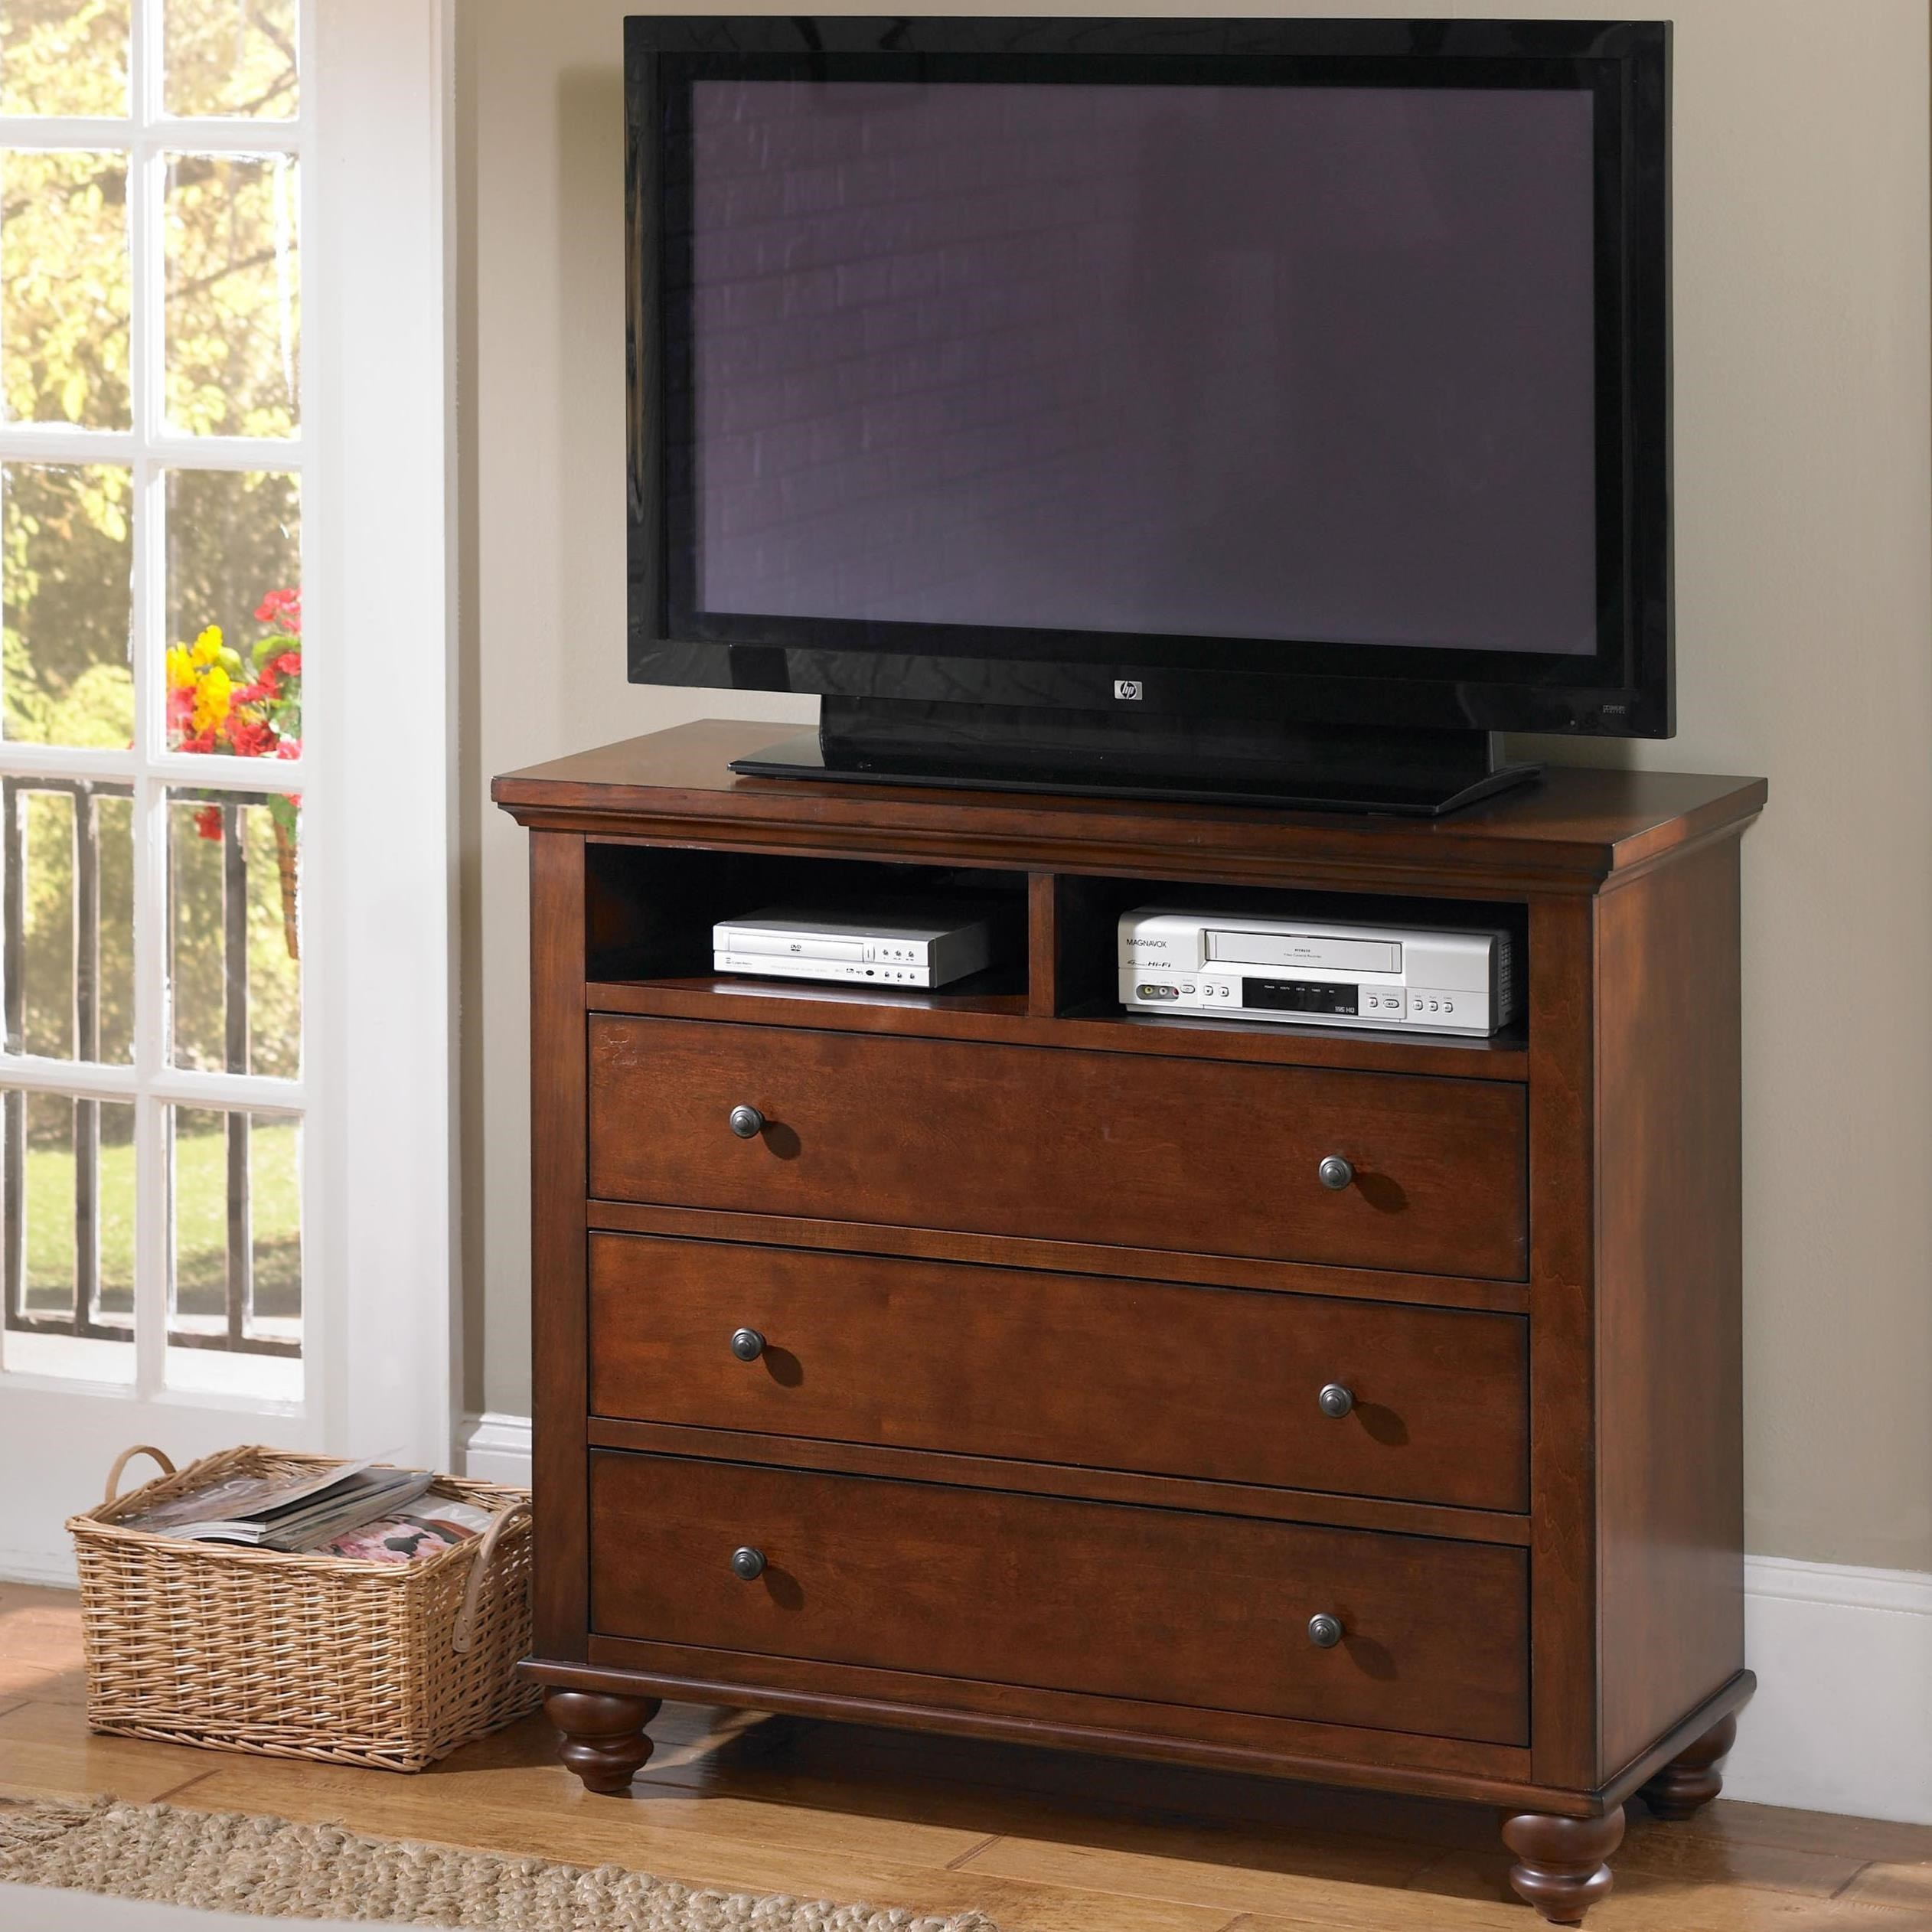 Cambridge Entertainment Chest  by Aspenhome at Gill Brothers Furniture